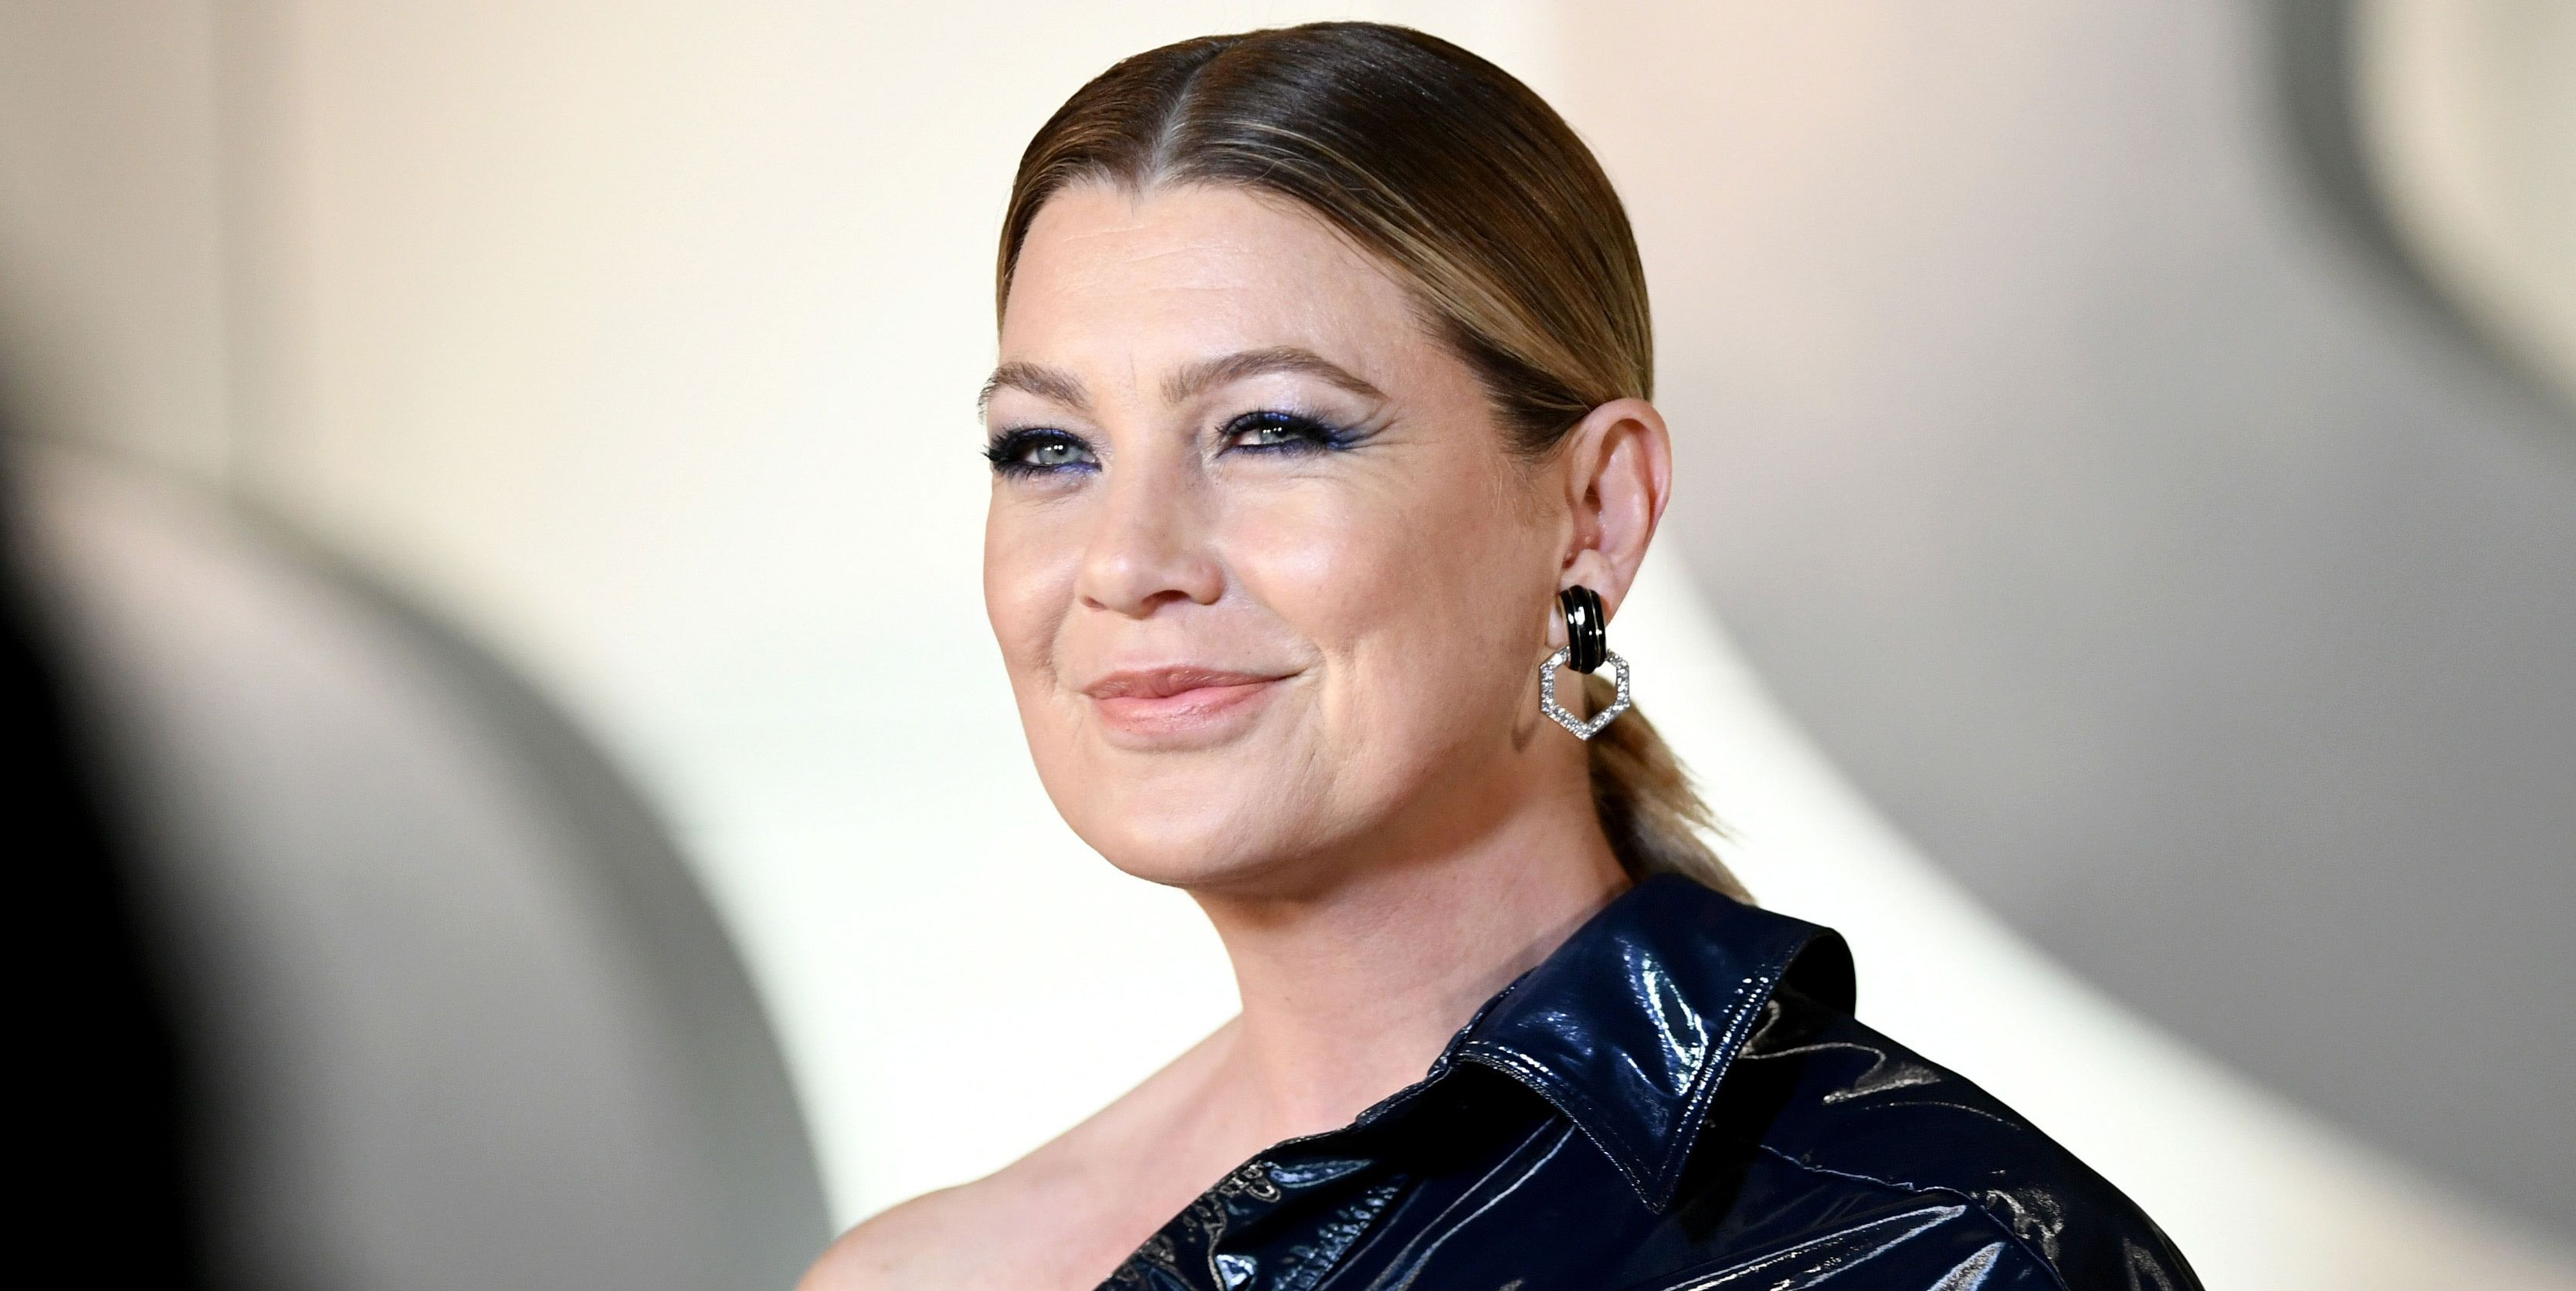 """Ellen Pompeo's Not Afraid to Talk About Race: """"These Are Important Conversations to Have"""""""